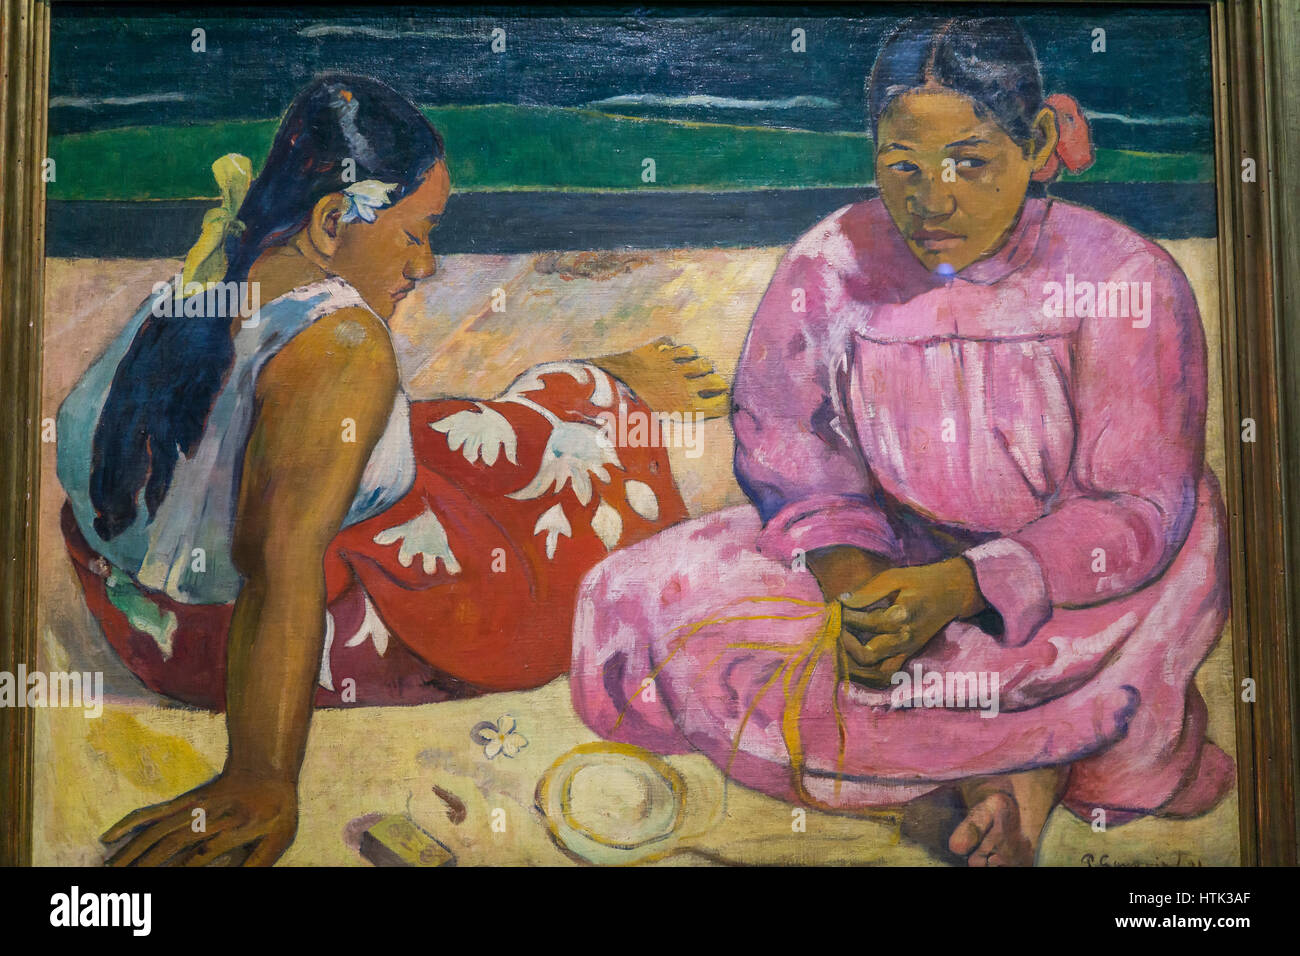 Impressionist painting at the Musee d'Orsay,Paul Gauguin, Paris, France. - Stock Image